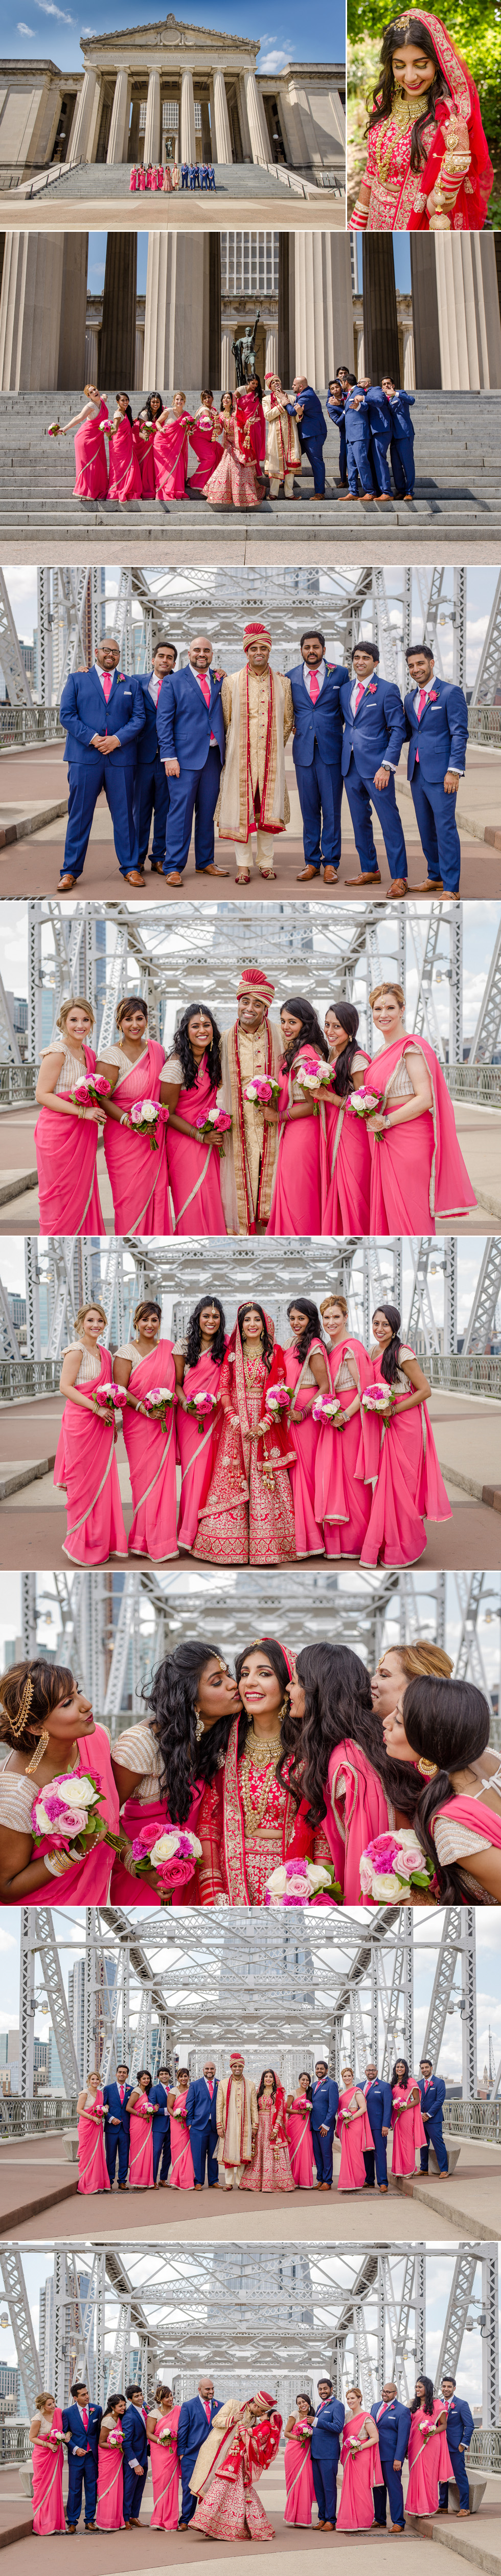 Nashville Indian wedding portraits